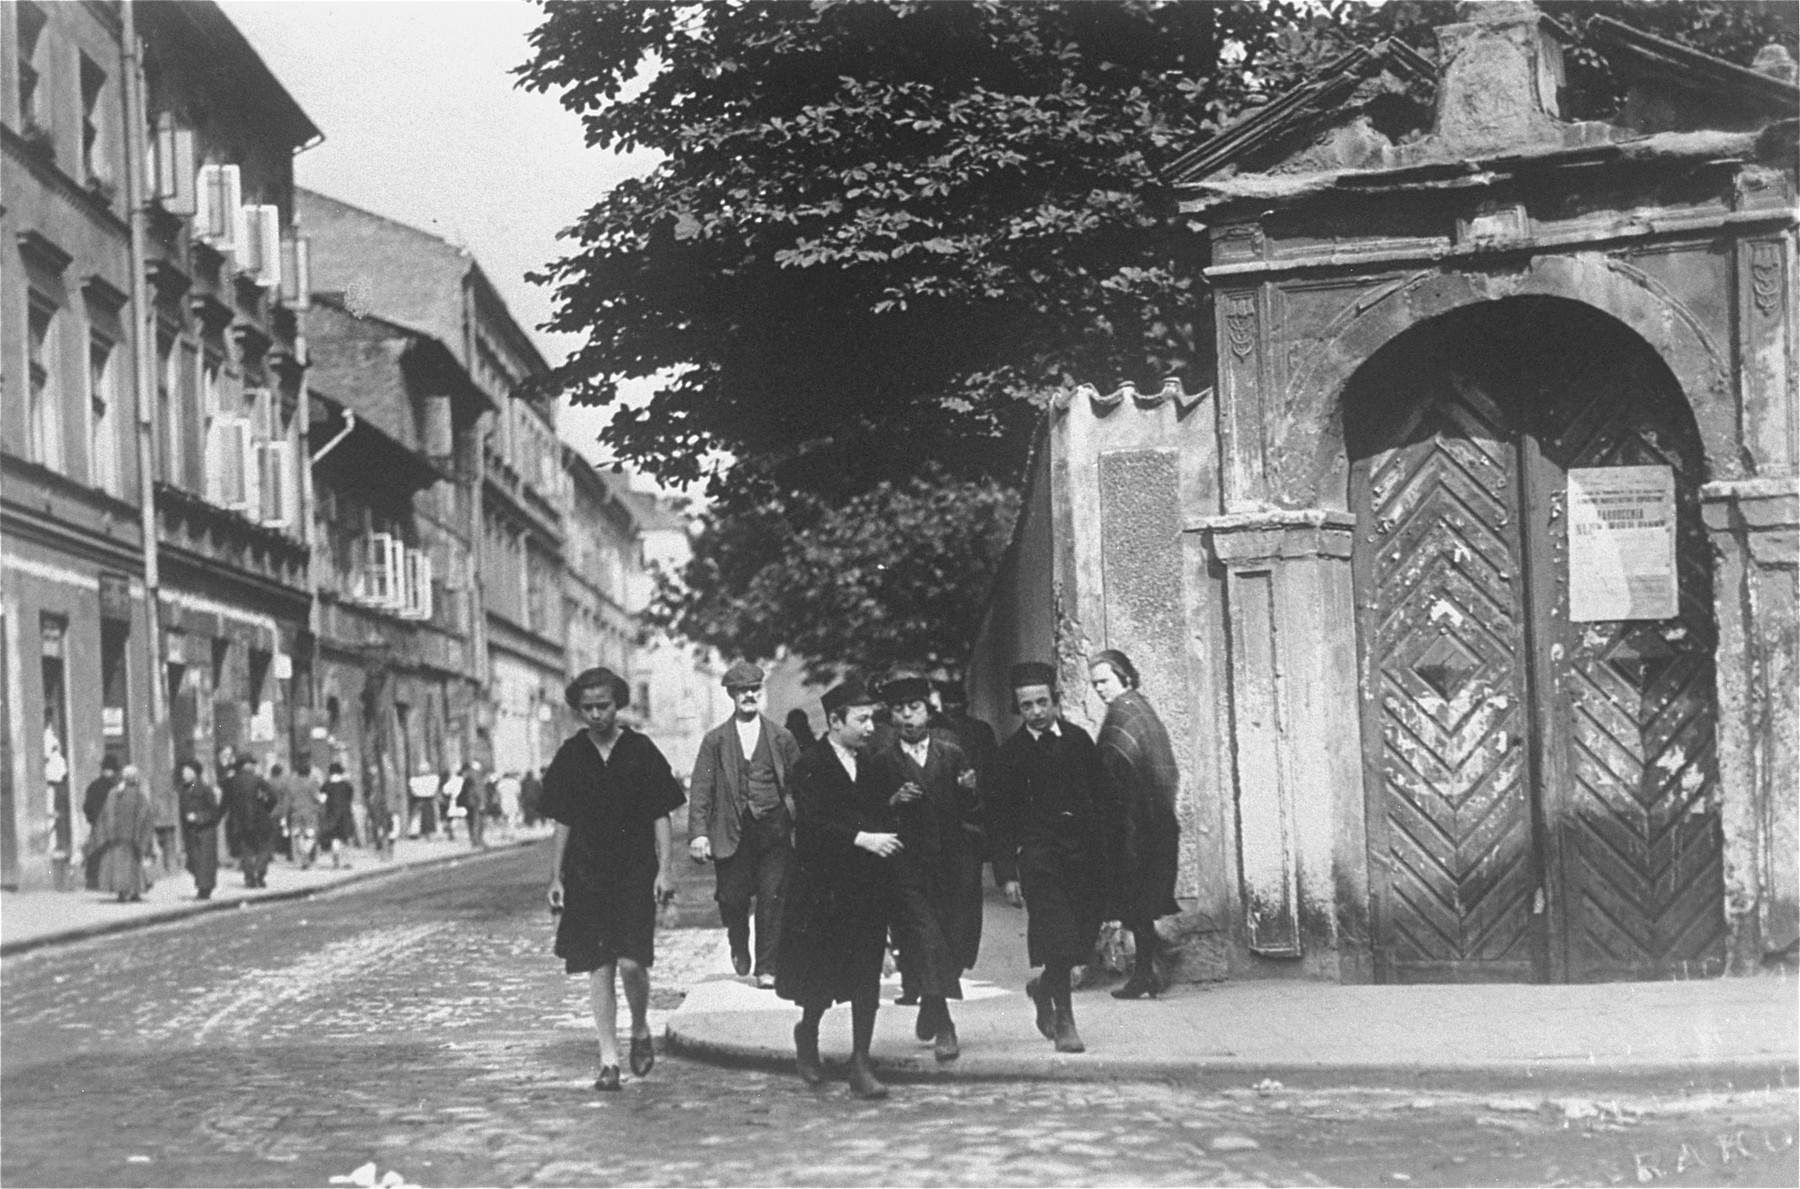 A group of Jewish children cross a street in Kazimierz, the Jewish quarter of Krakow.